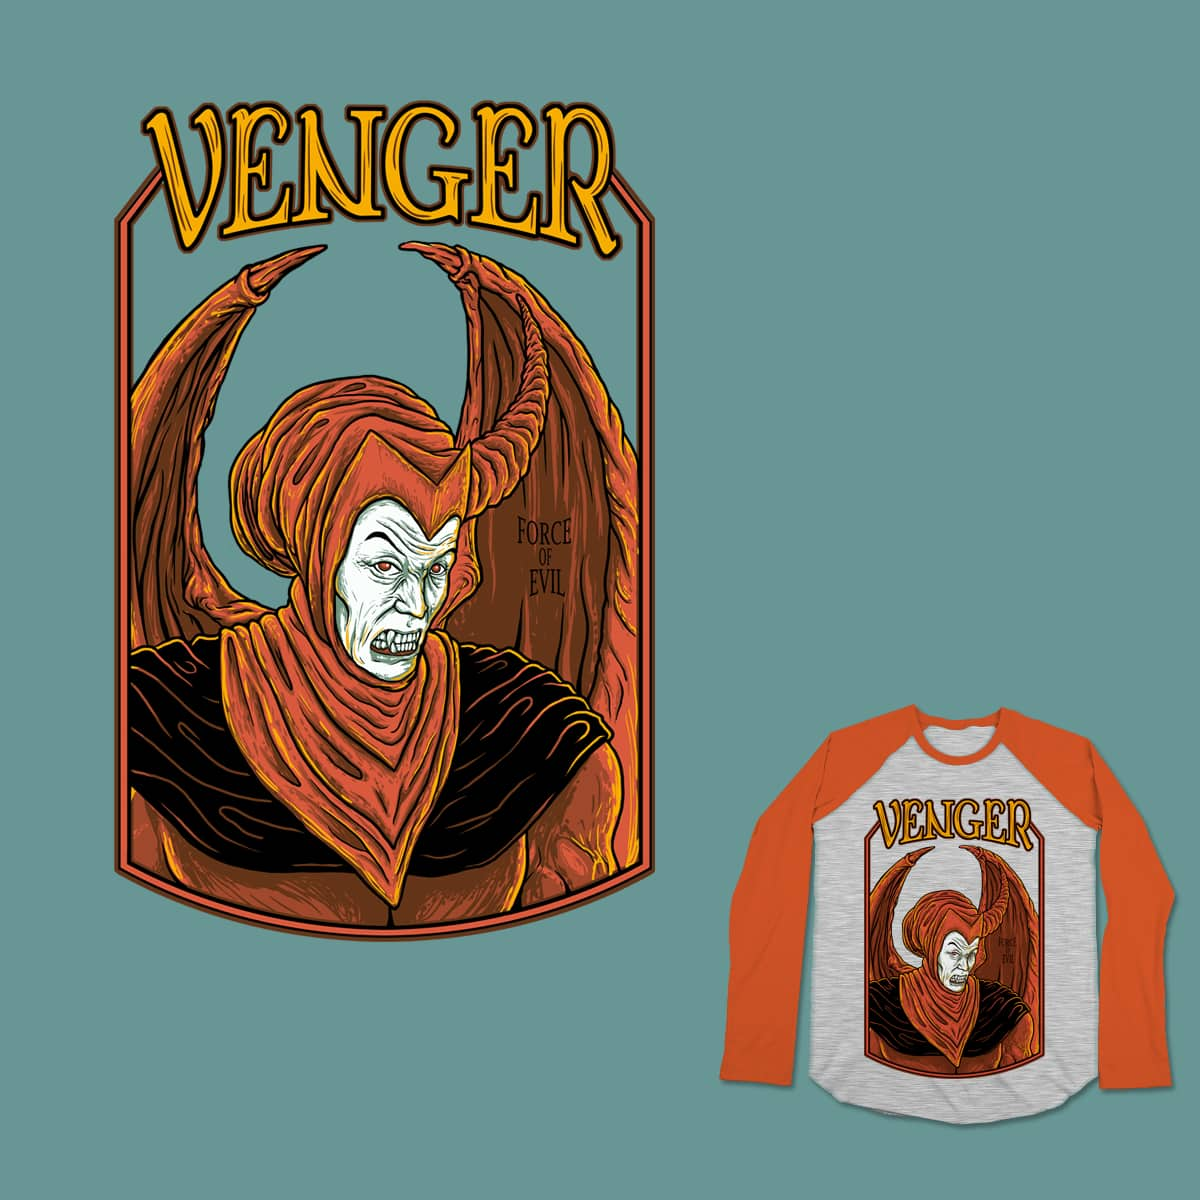 Venger, Force of Evil by theledexter on Threadless